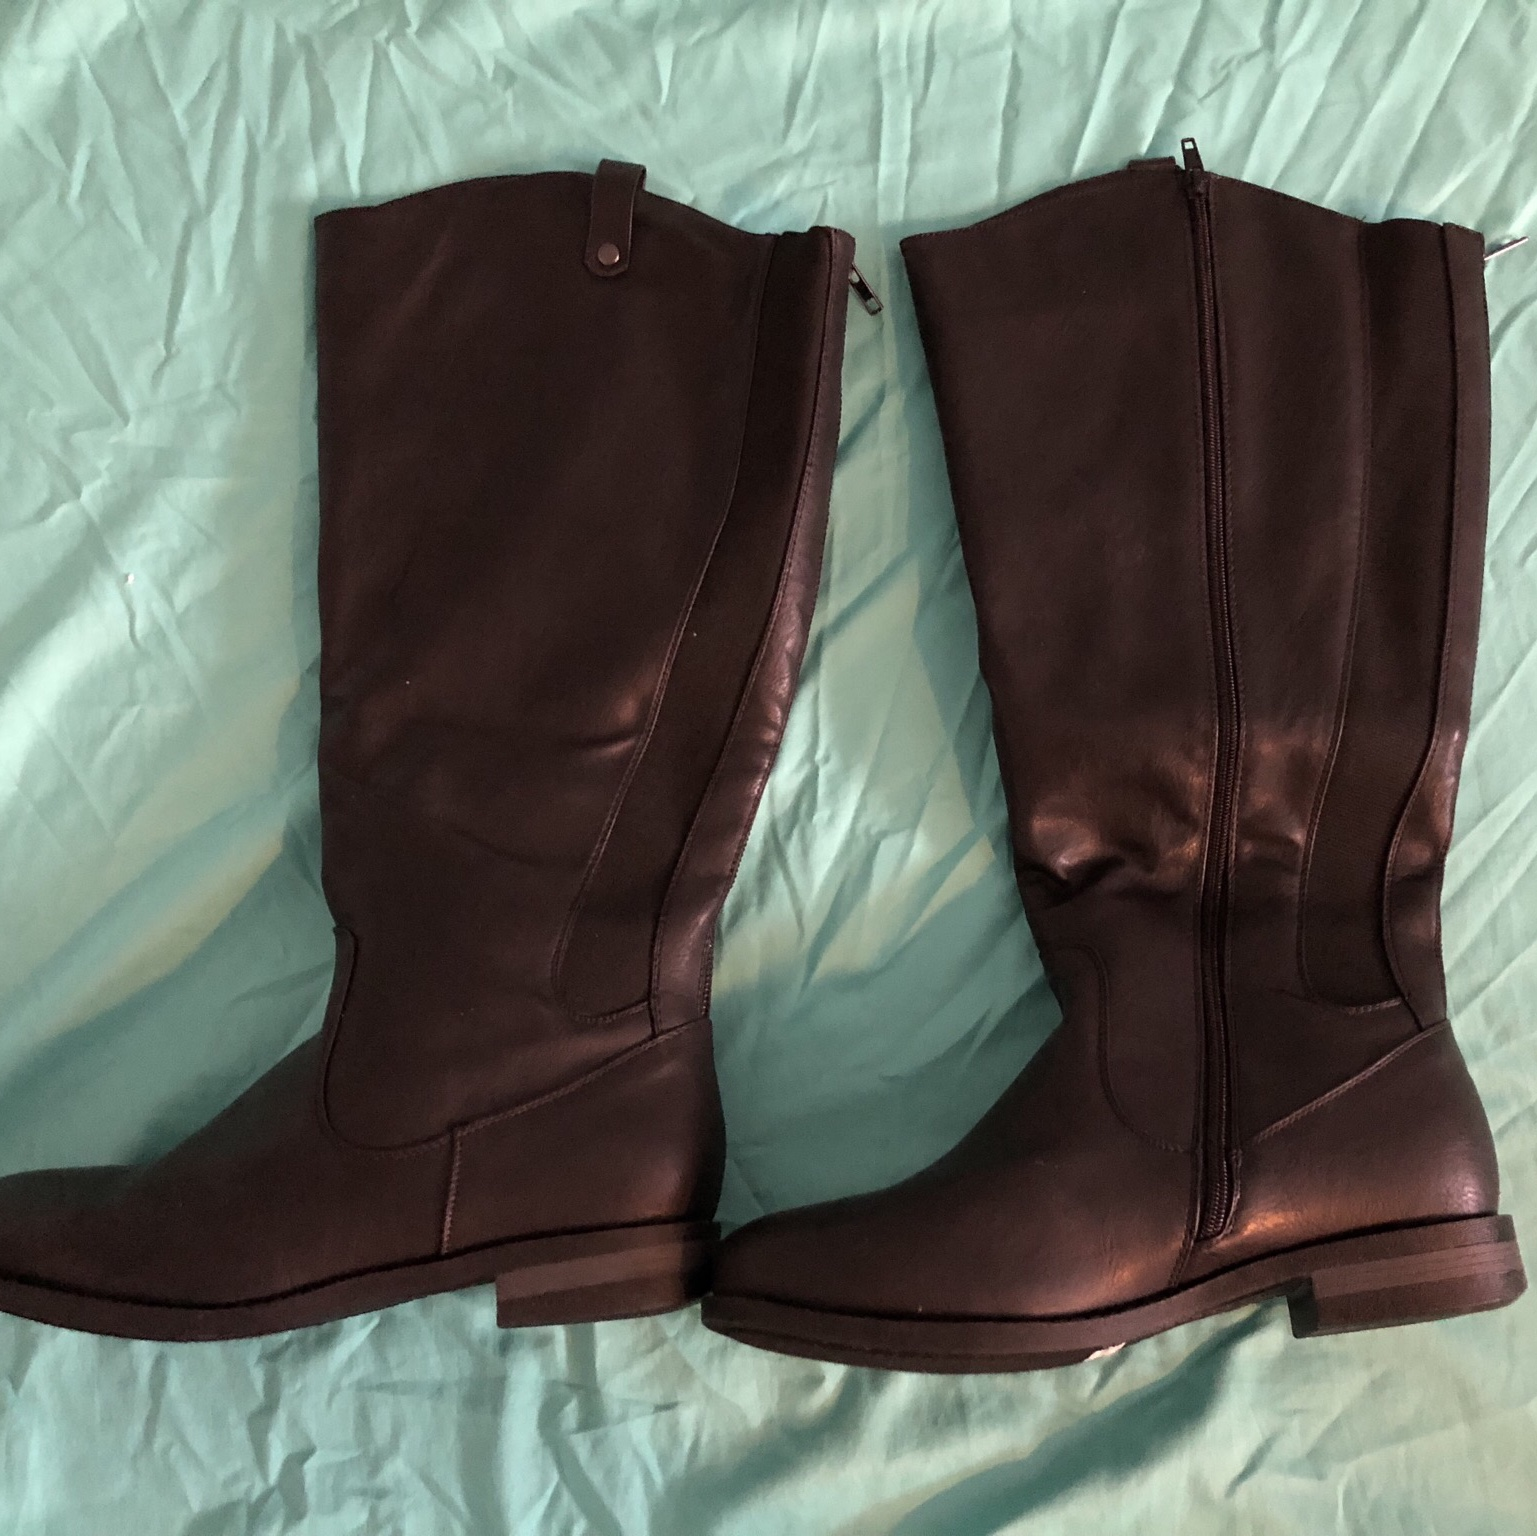 1850d8bf242 Torrid size 12W riding boots. Side zipper entry.... - Depop